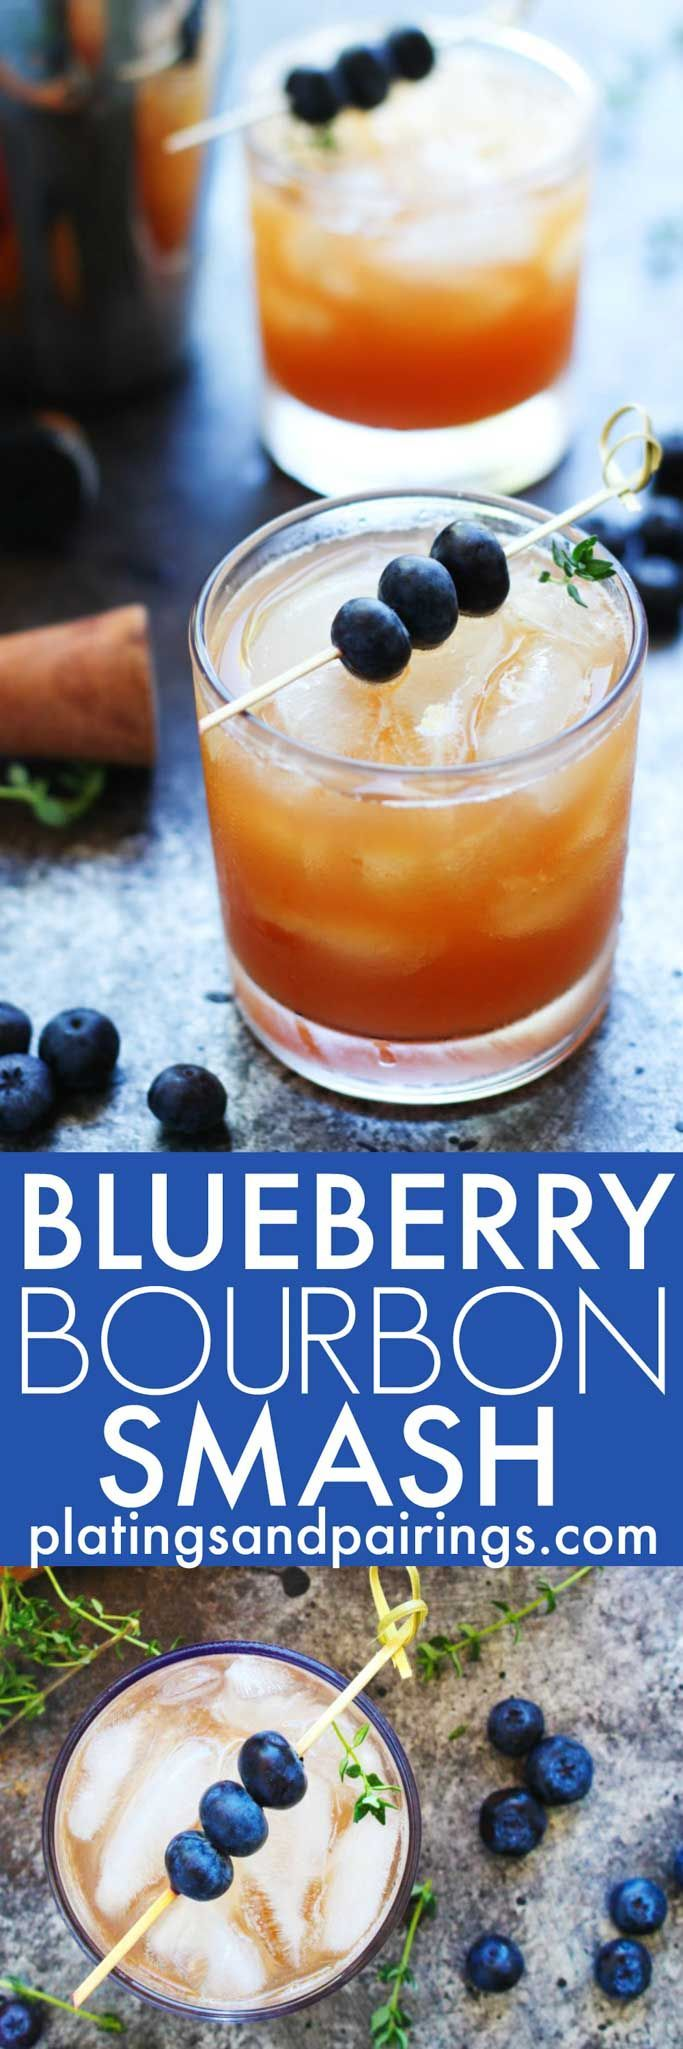 This Blueberry Bourbon Smash Cocktail combines fresh blueberries ...